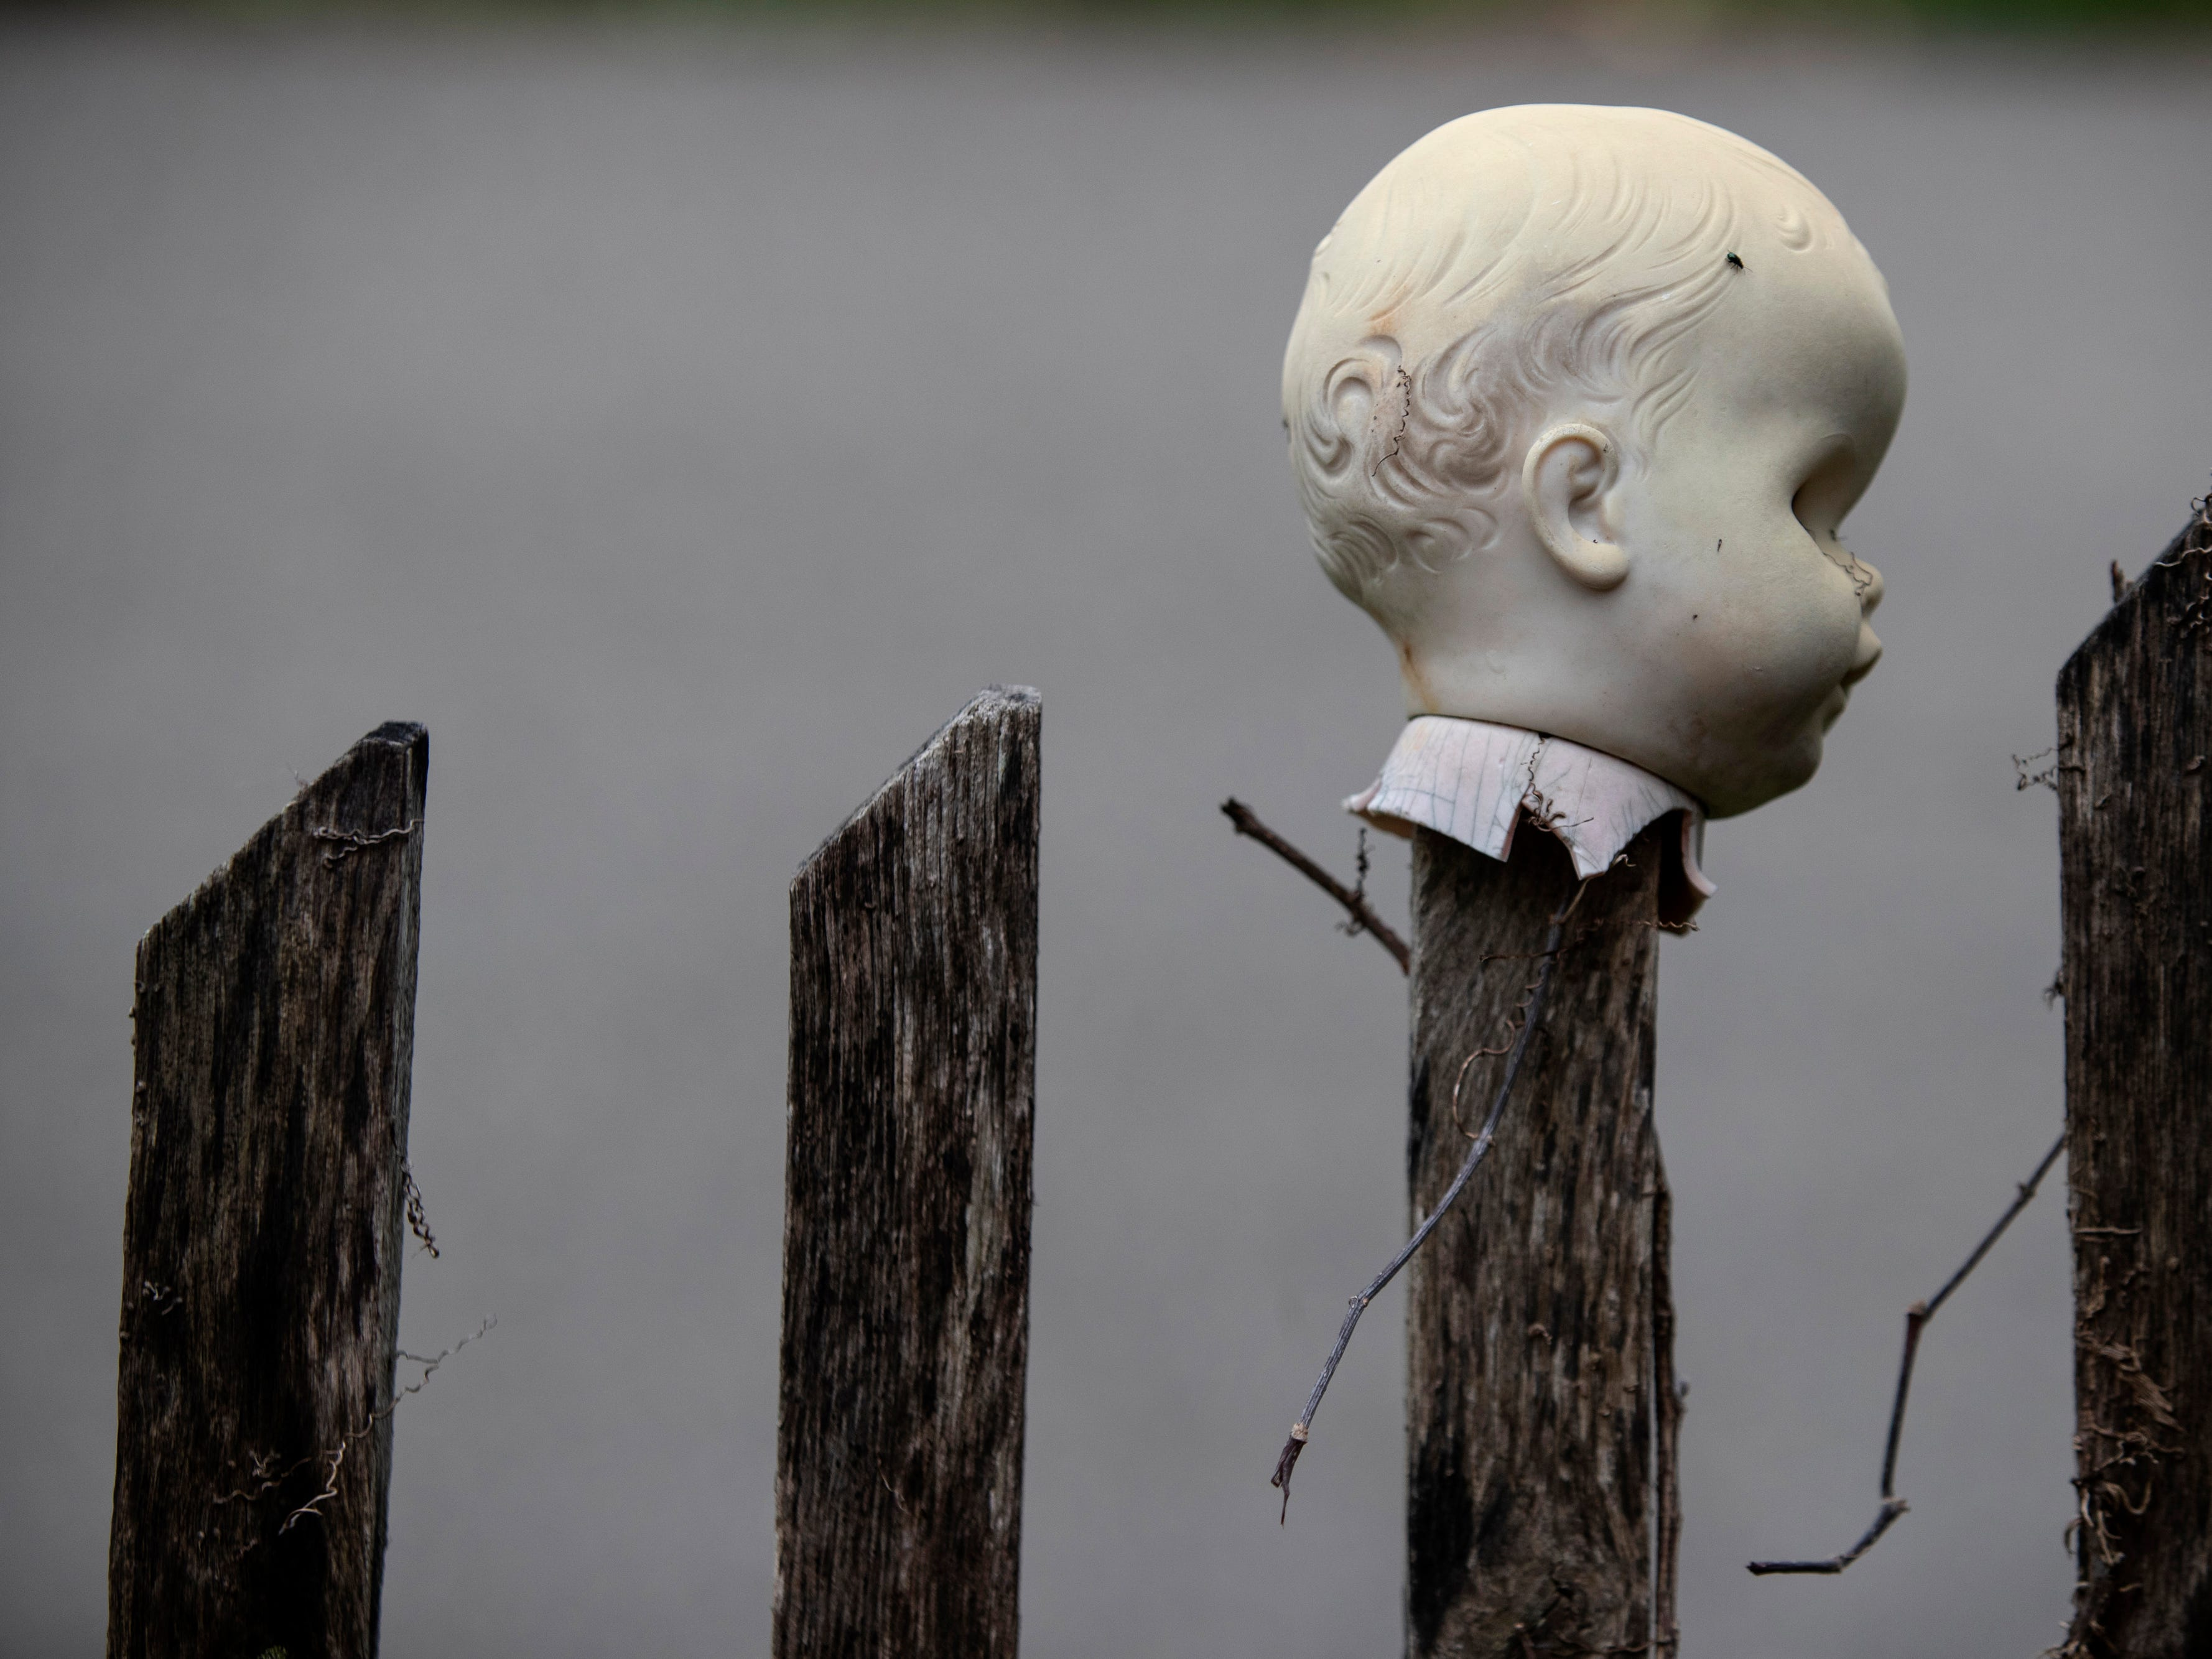 The head of a baby doll, impaled on a picket fence at the Home for Wayward Babydolls. April 19, 2019